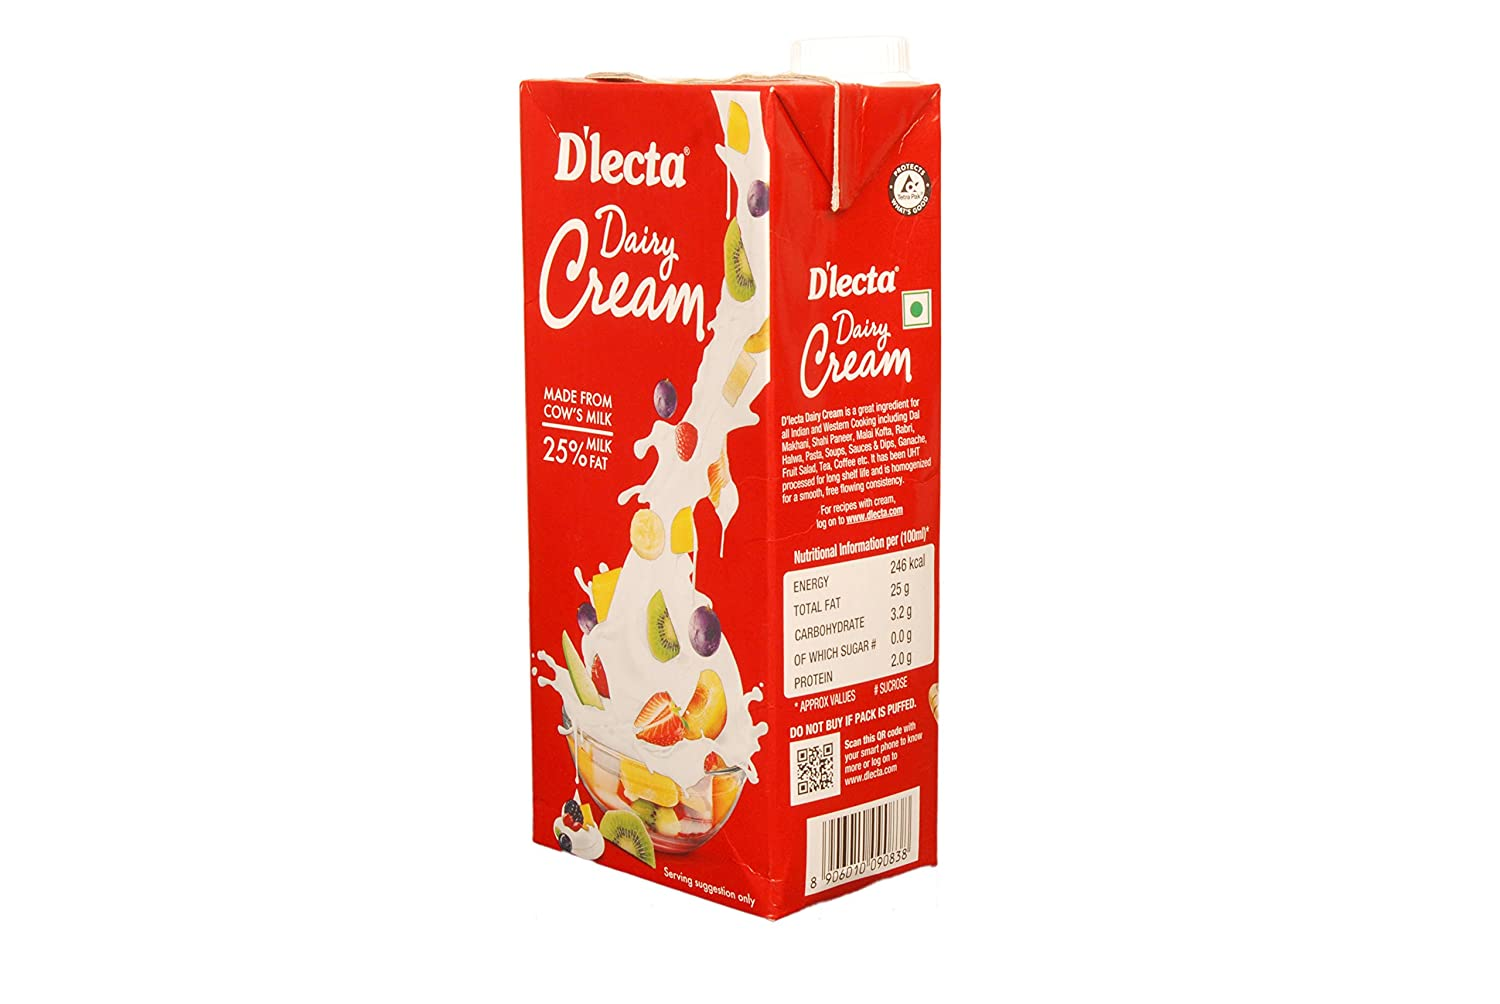 D'lecta Dairy Cream - 1Ltr - All About Baking